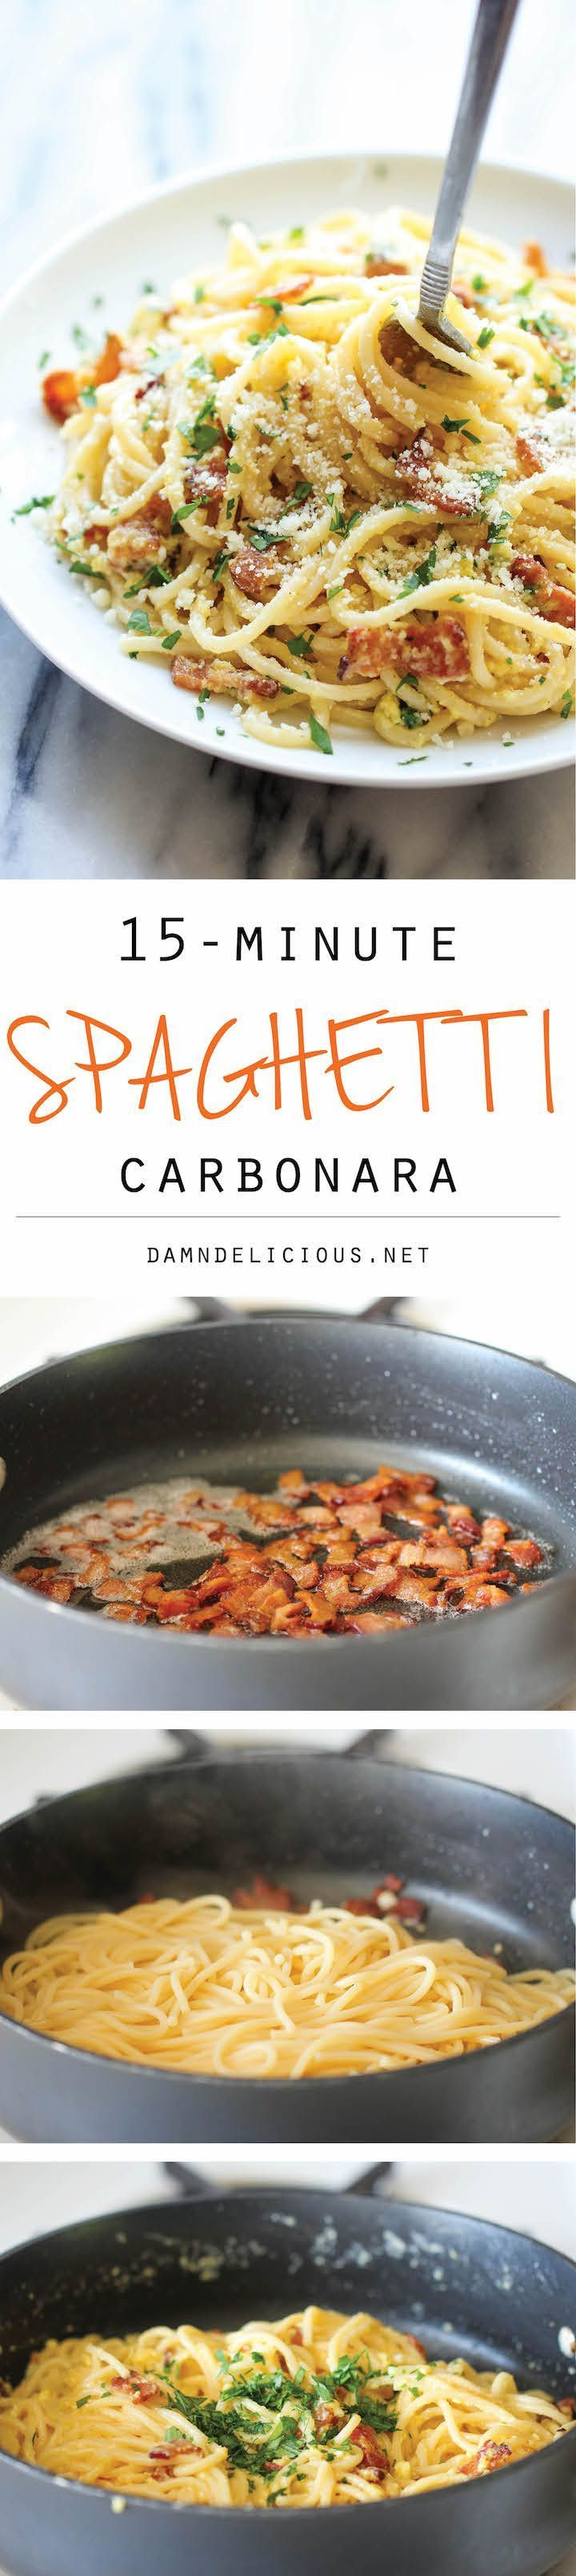 Spaghetti Carbonara - The easiest pasta dish you will ever make with just 5 ingredients in 15 minutes, loaded with Parmesan and bacon! #pasta #carbonara #spaghetti #pastarecipe #dinner #pastadinner